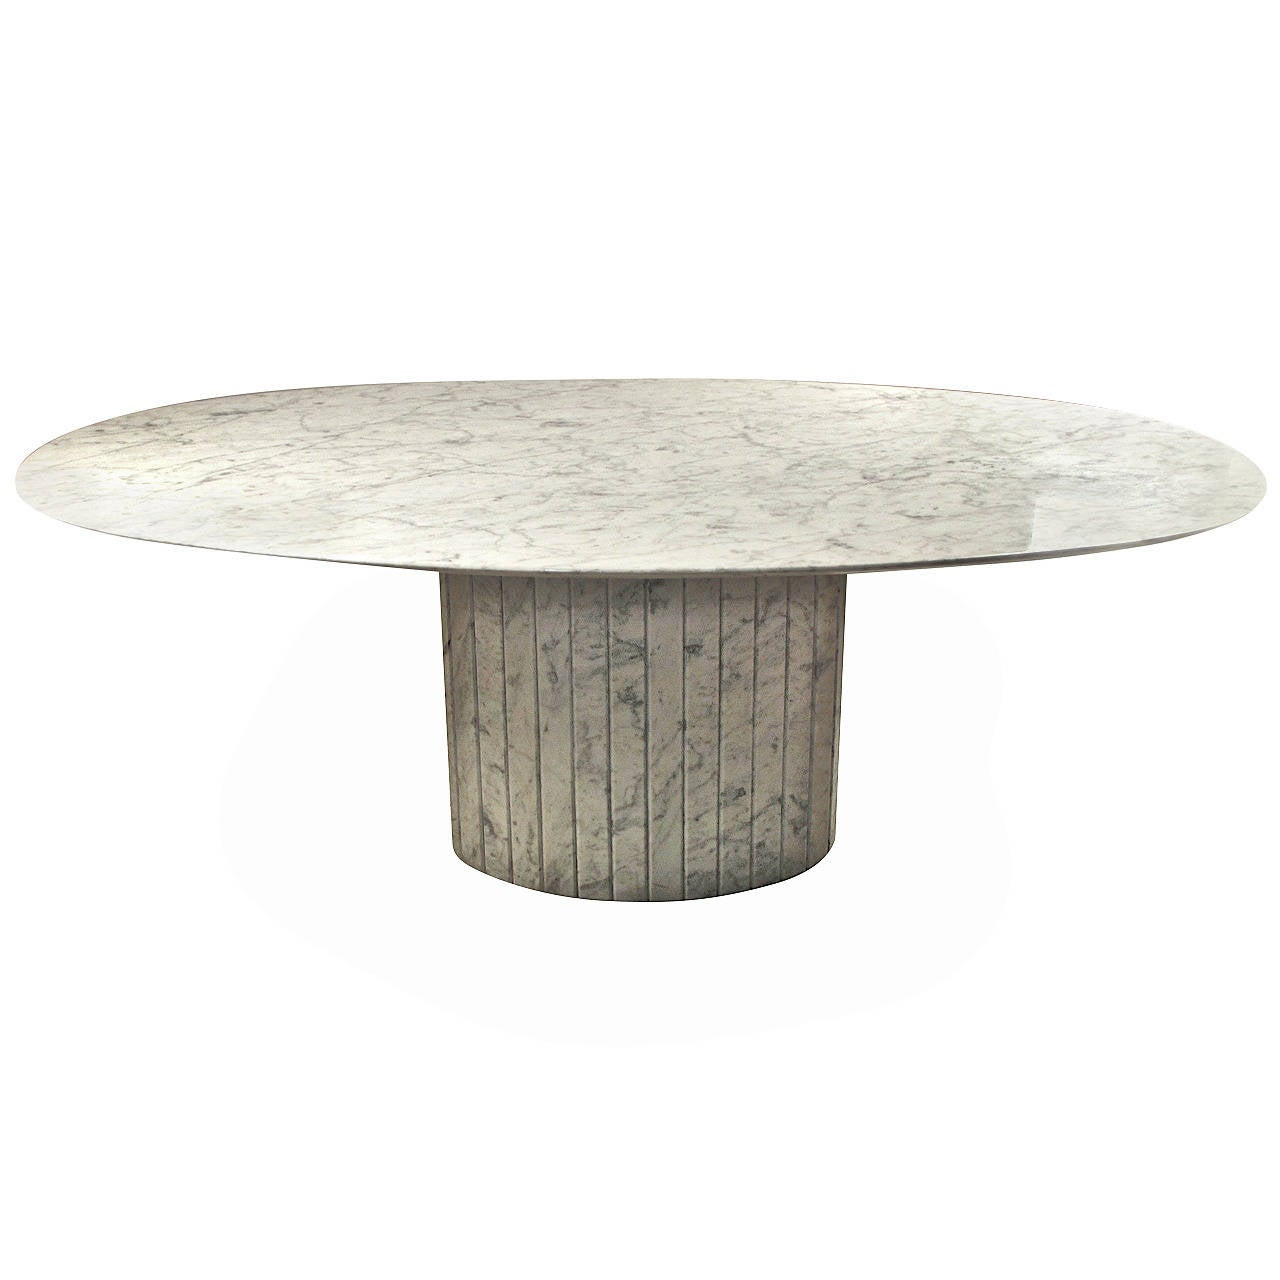 Oval Knife Edge Carrara Marble Dining Table Italy Circa 1970 At